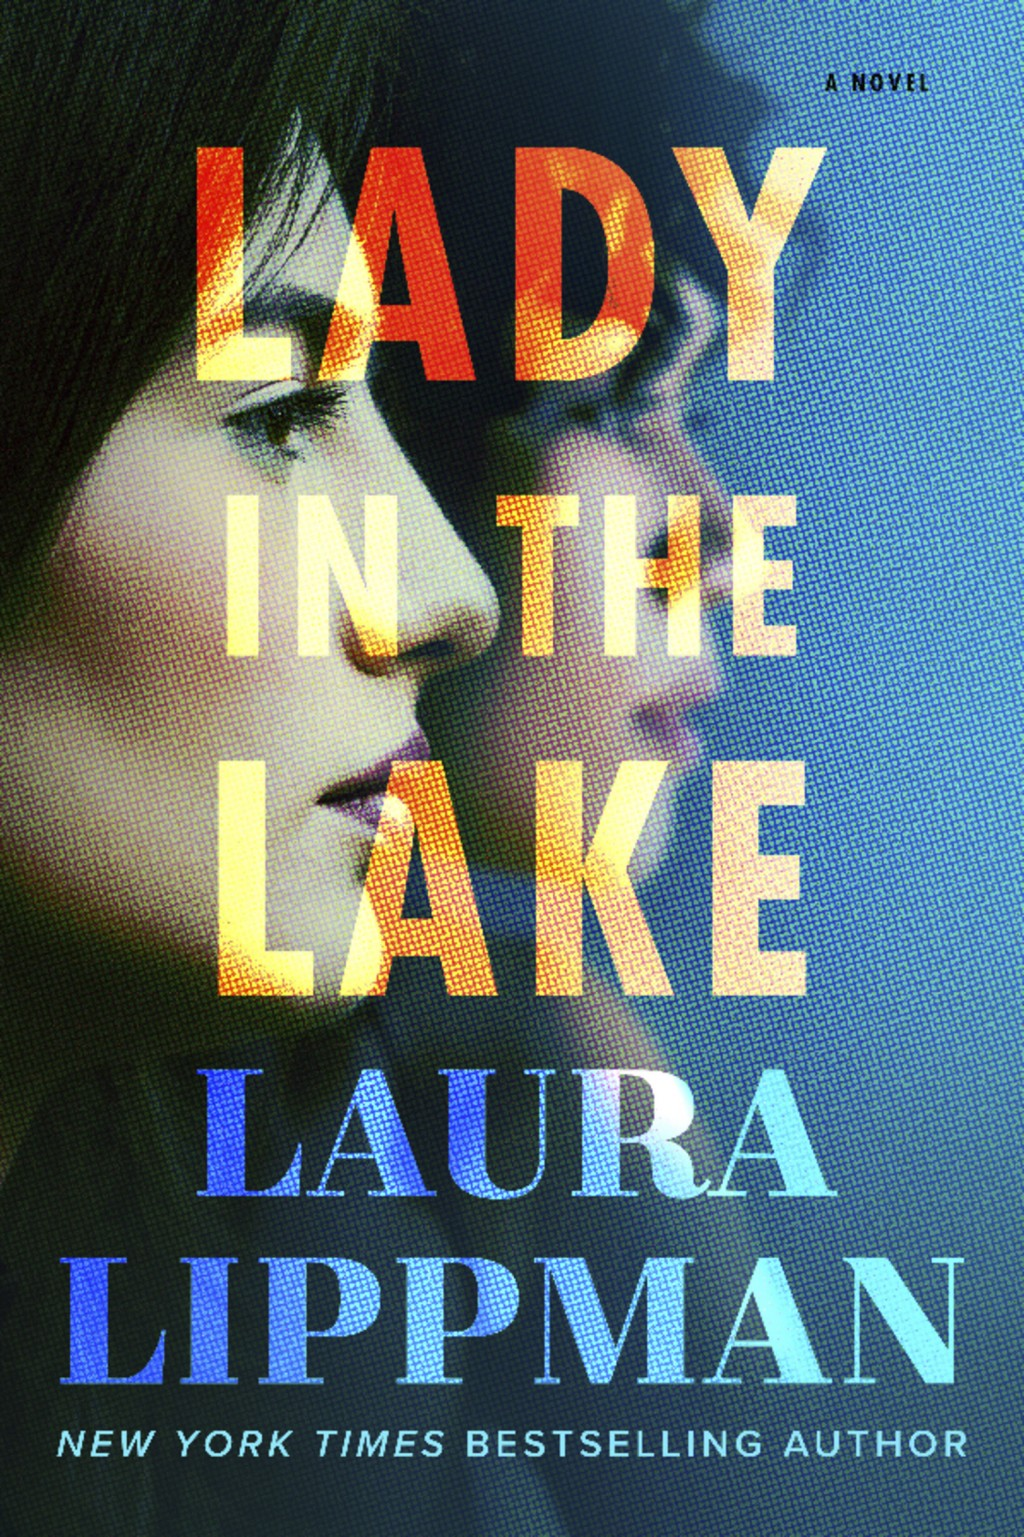 """This cover image released by William Morrow shows """"Lady in the Lake,"""" by Laura Lippman. (William Morrow via AP)"""